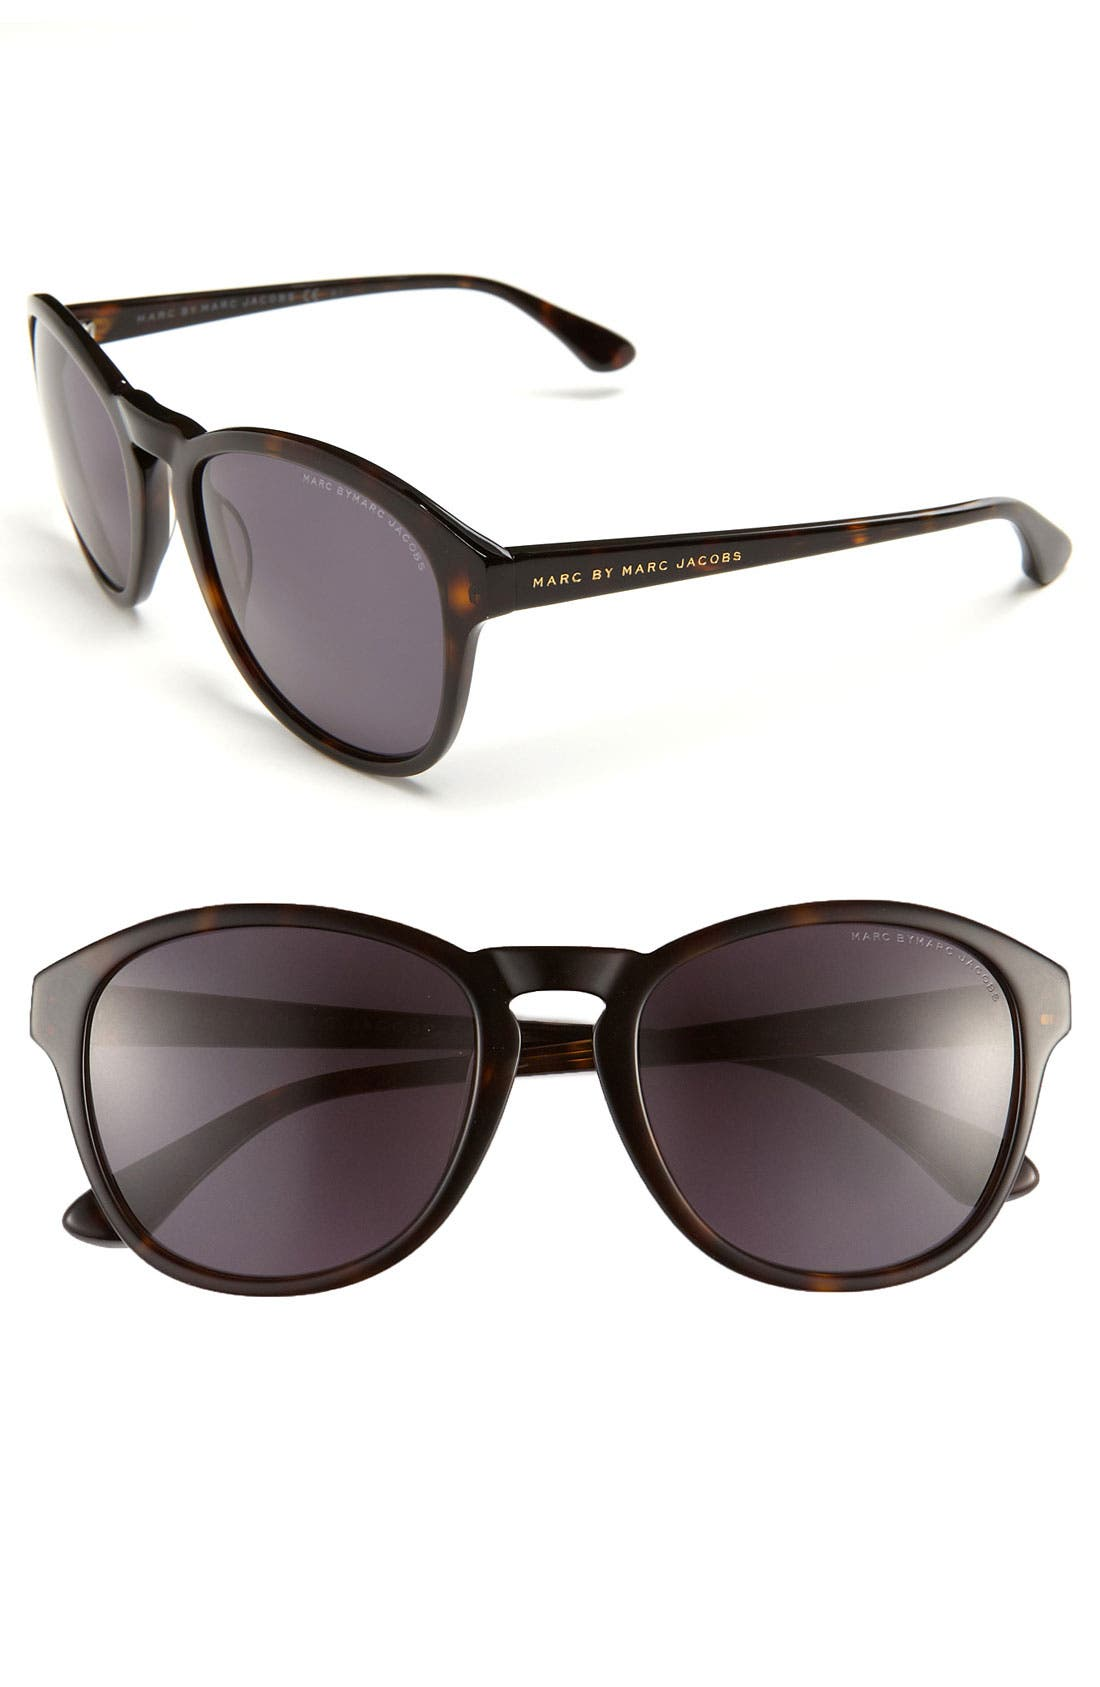 Main Image - MARC BY MARC JACOBS 54mm Oval Sunglasses